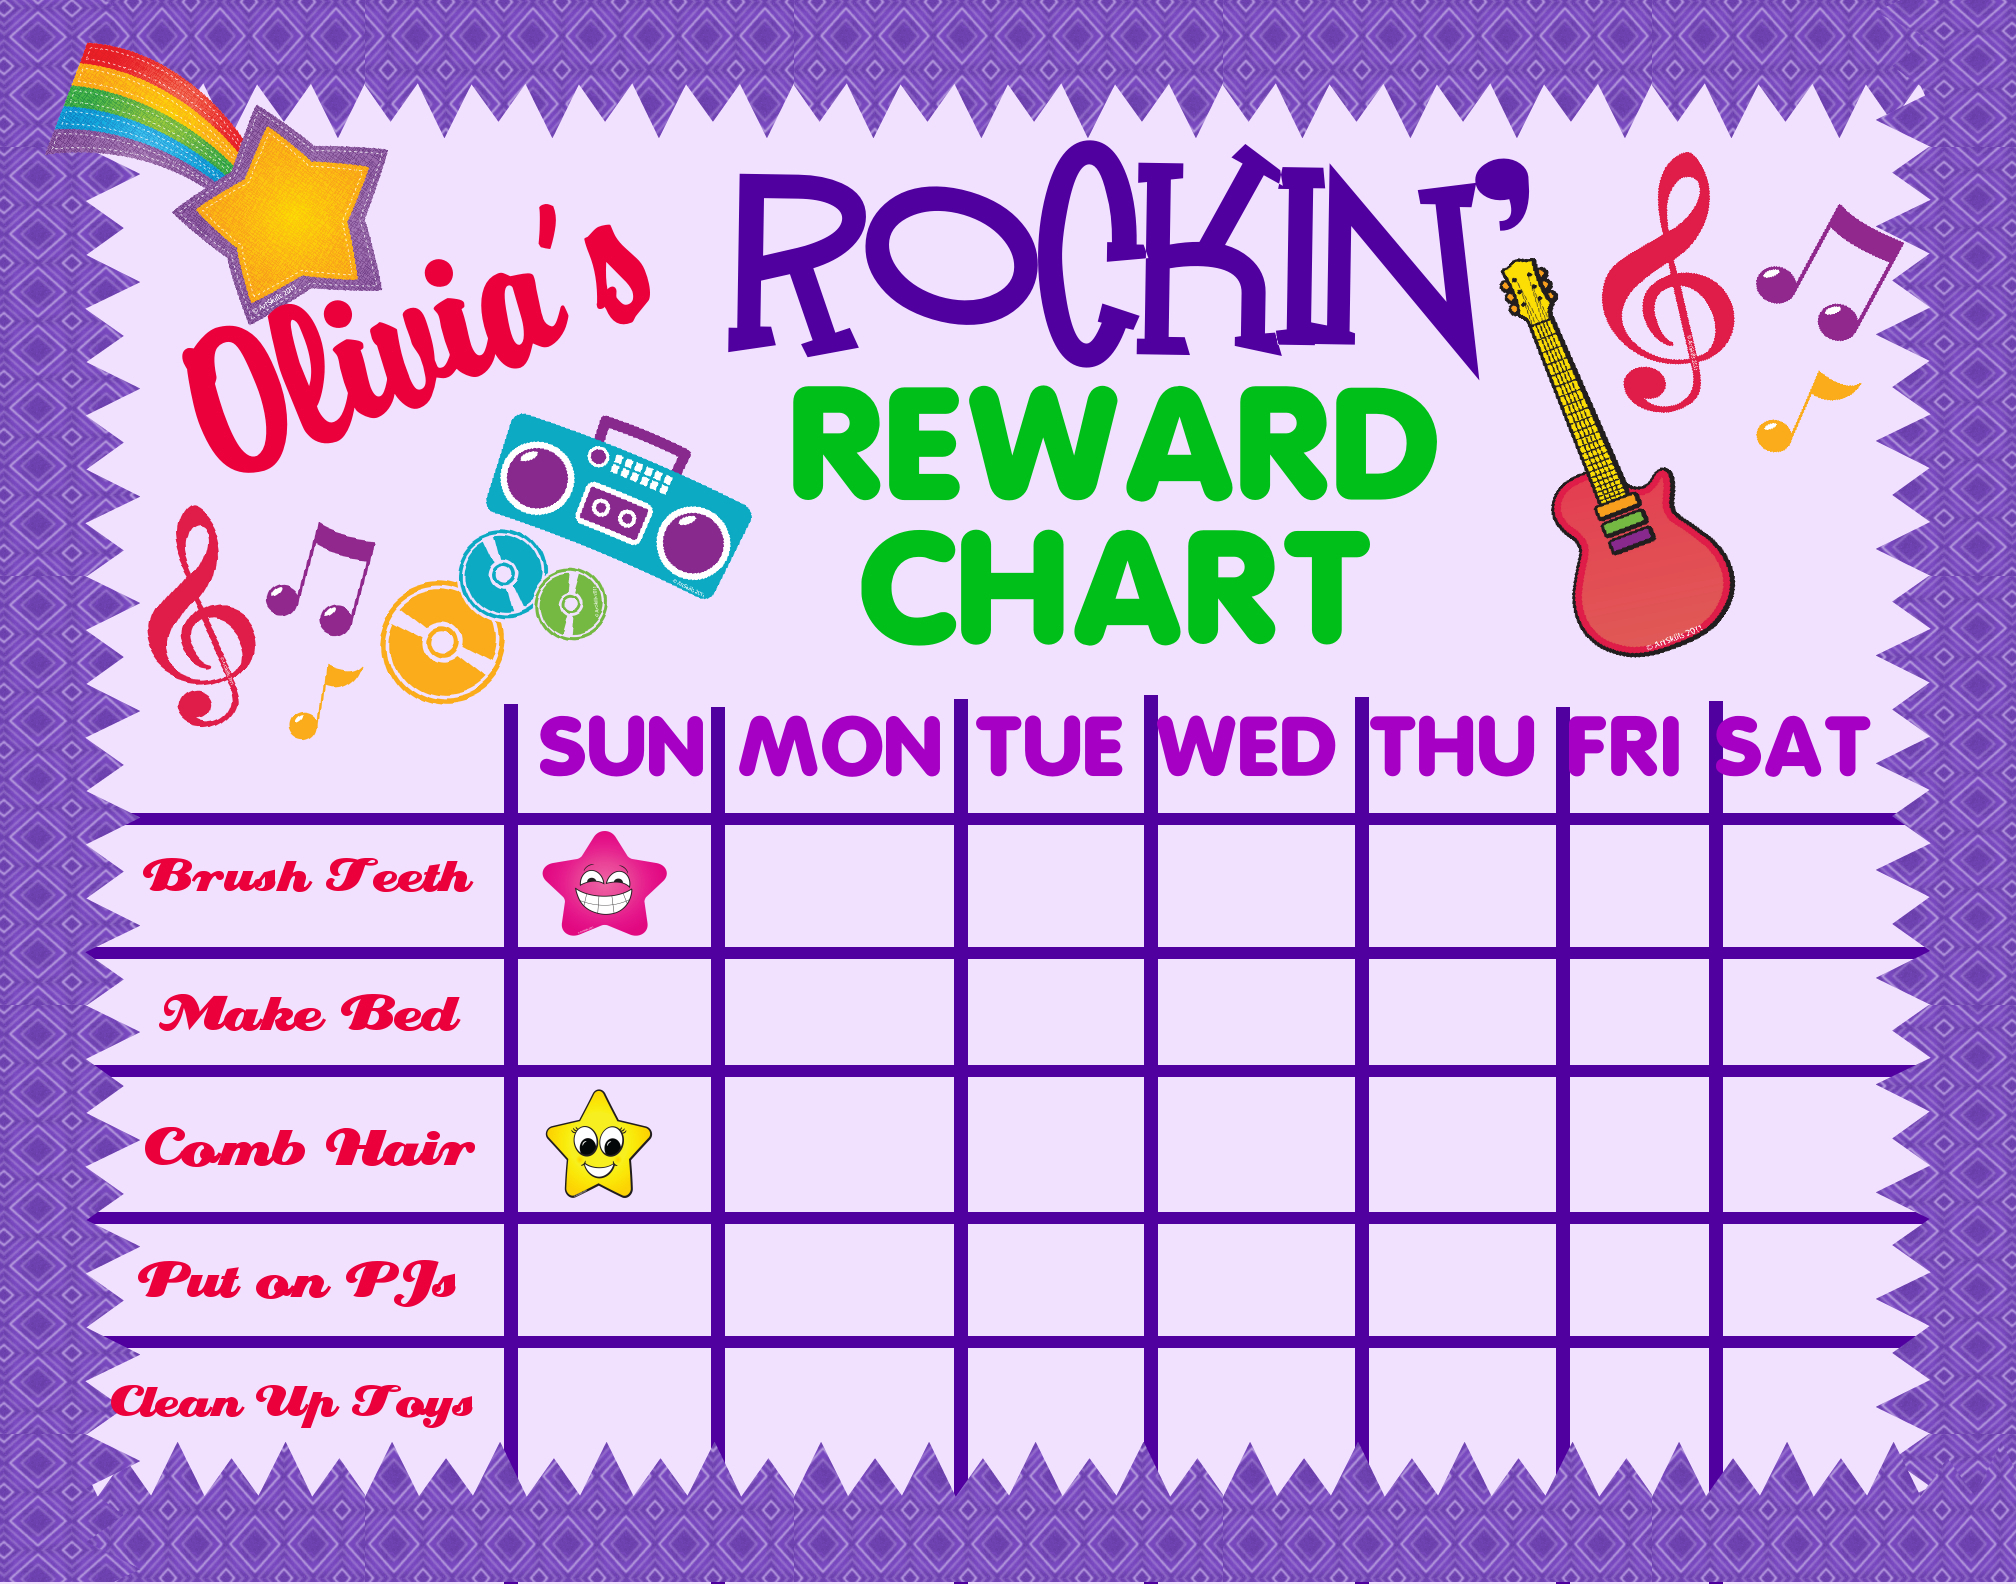 make a reward chart poster